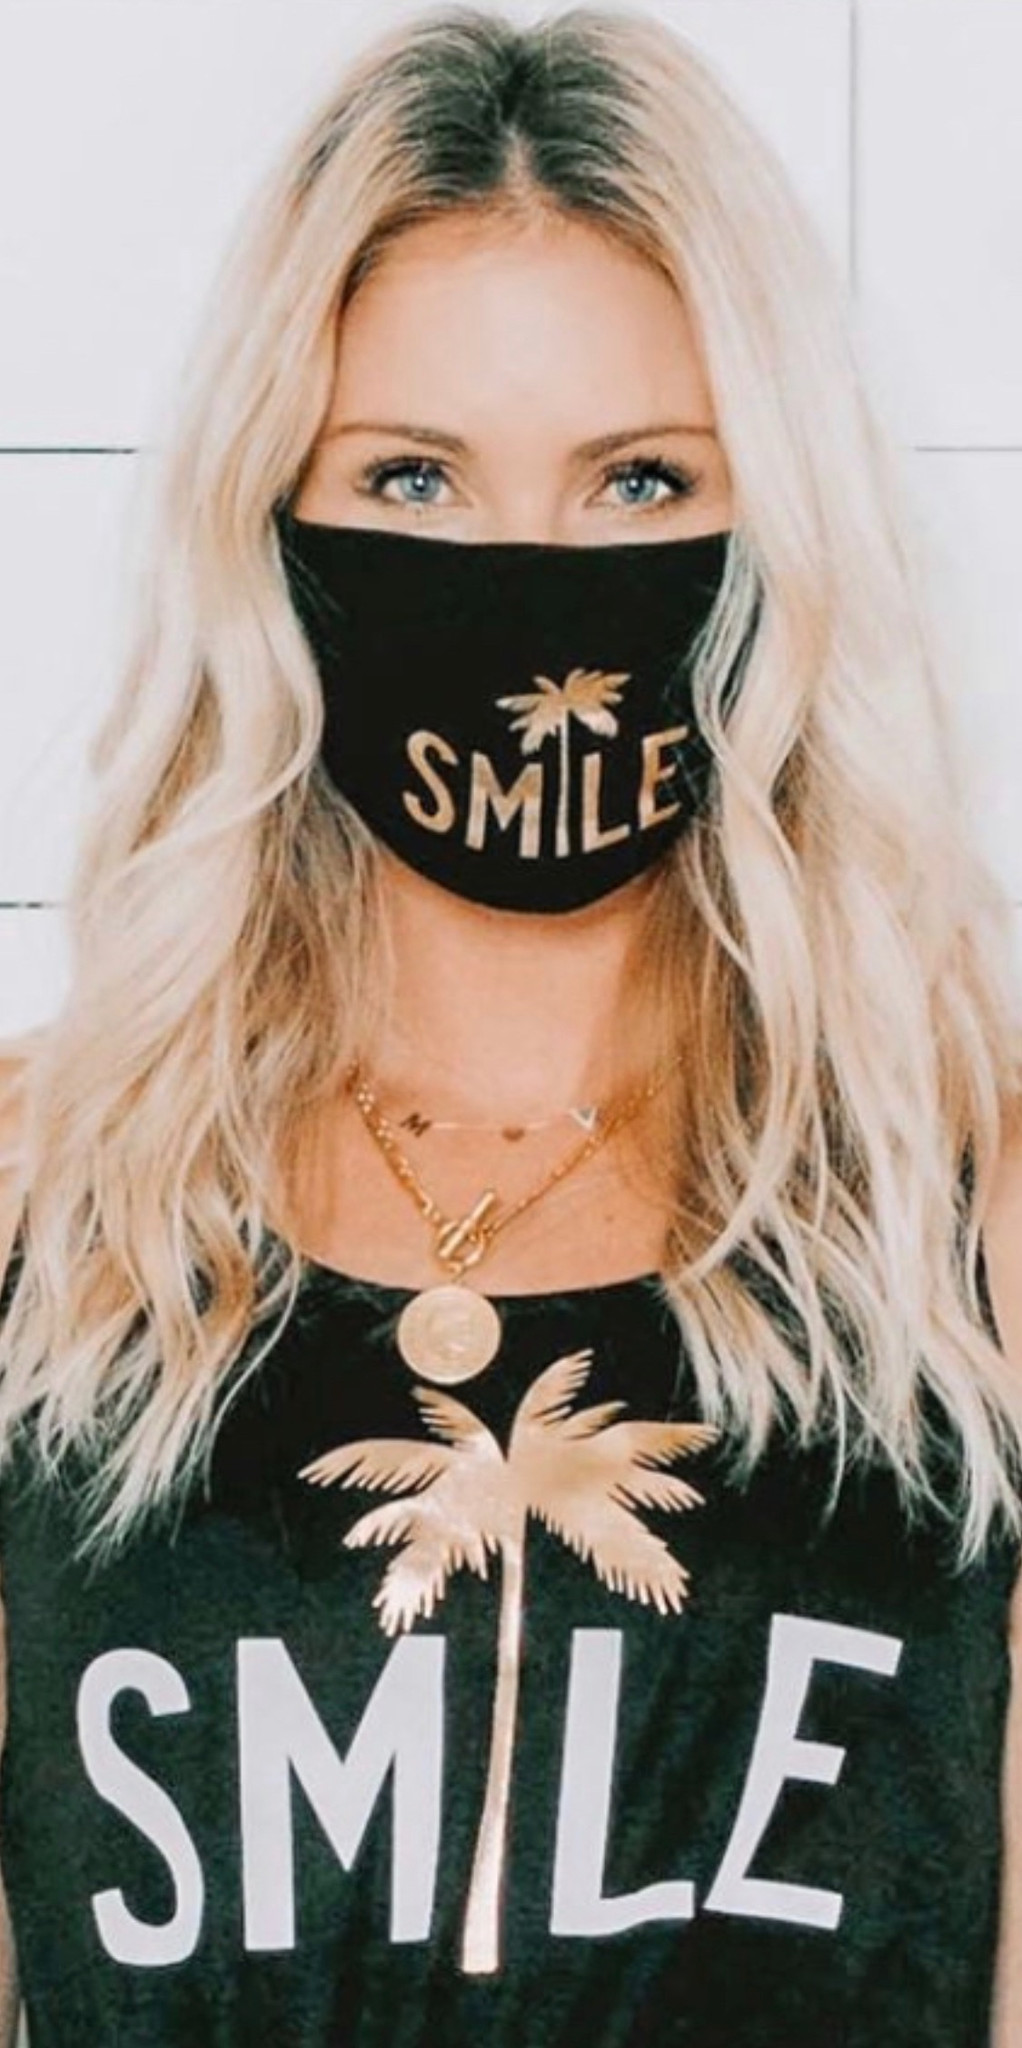 SMILE COTTON FACE MASK (Black w/ Gold)